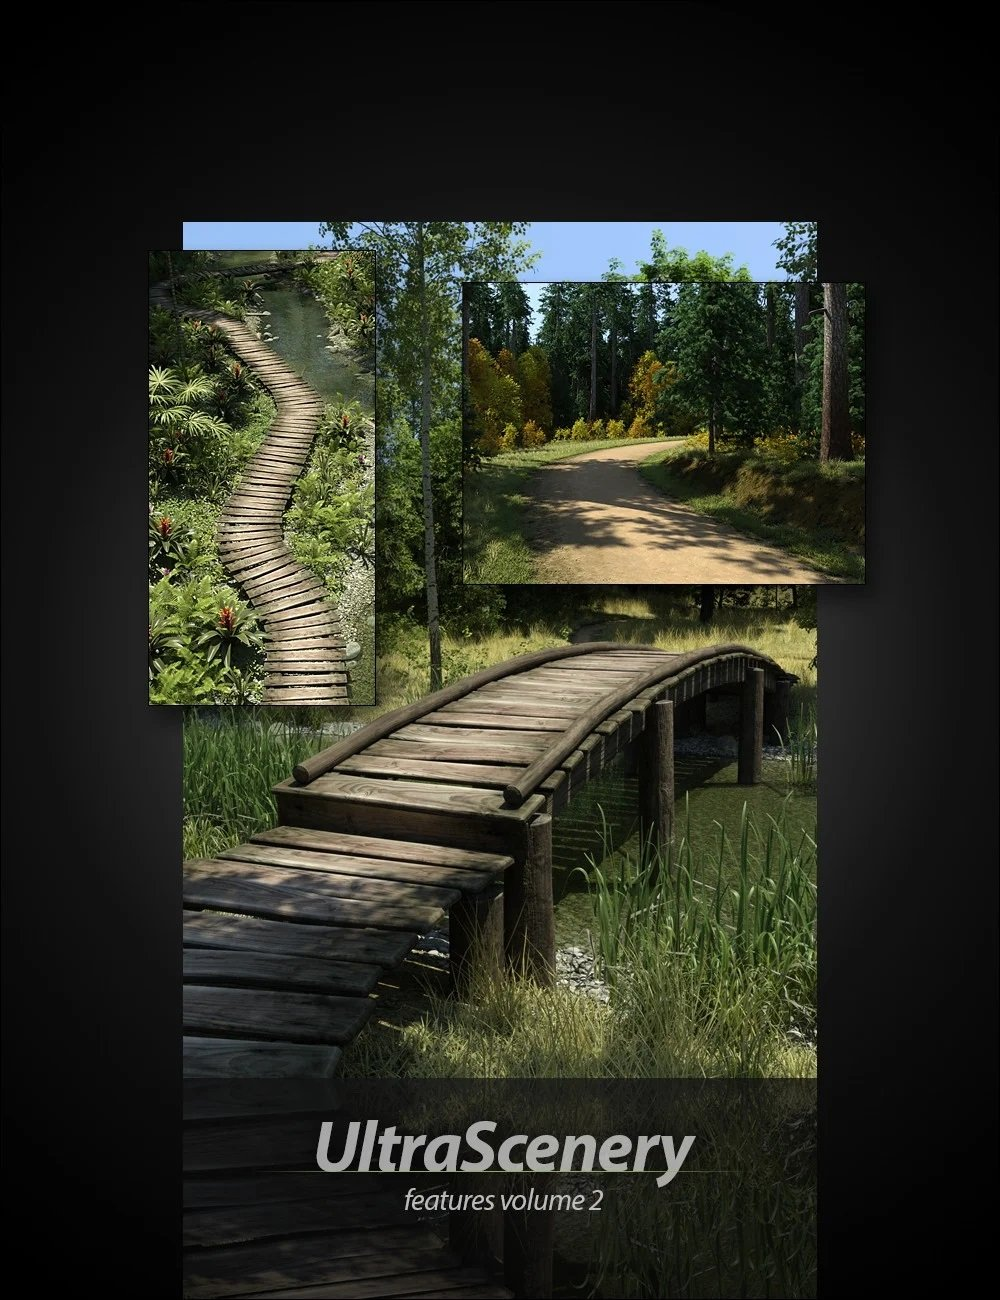 UltraScenery - Landscape Features